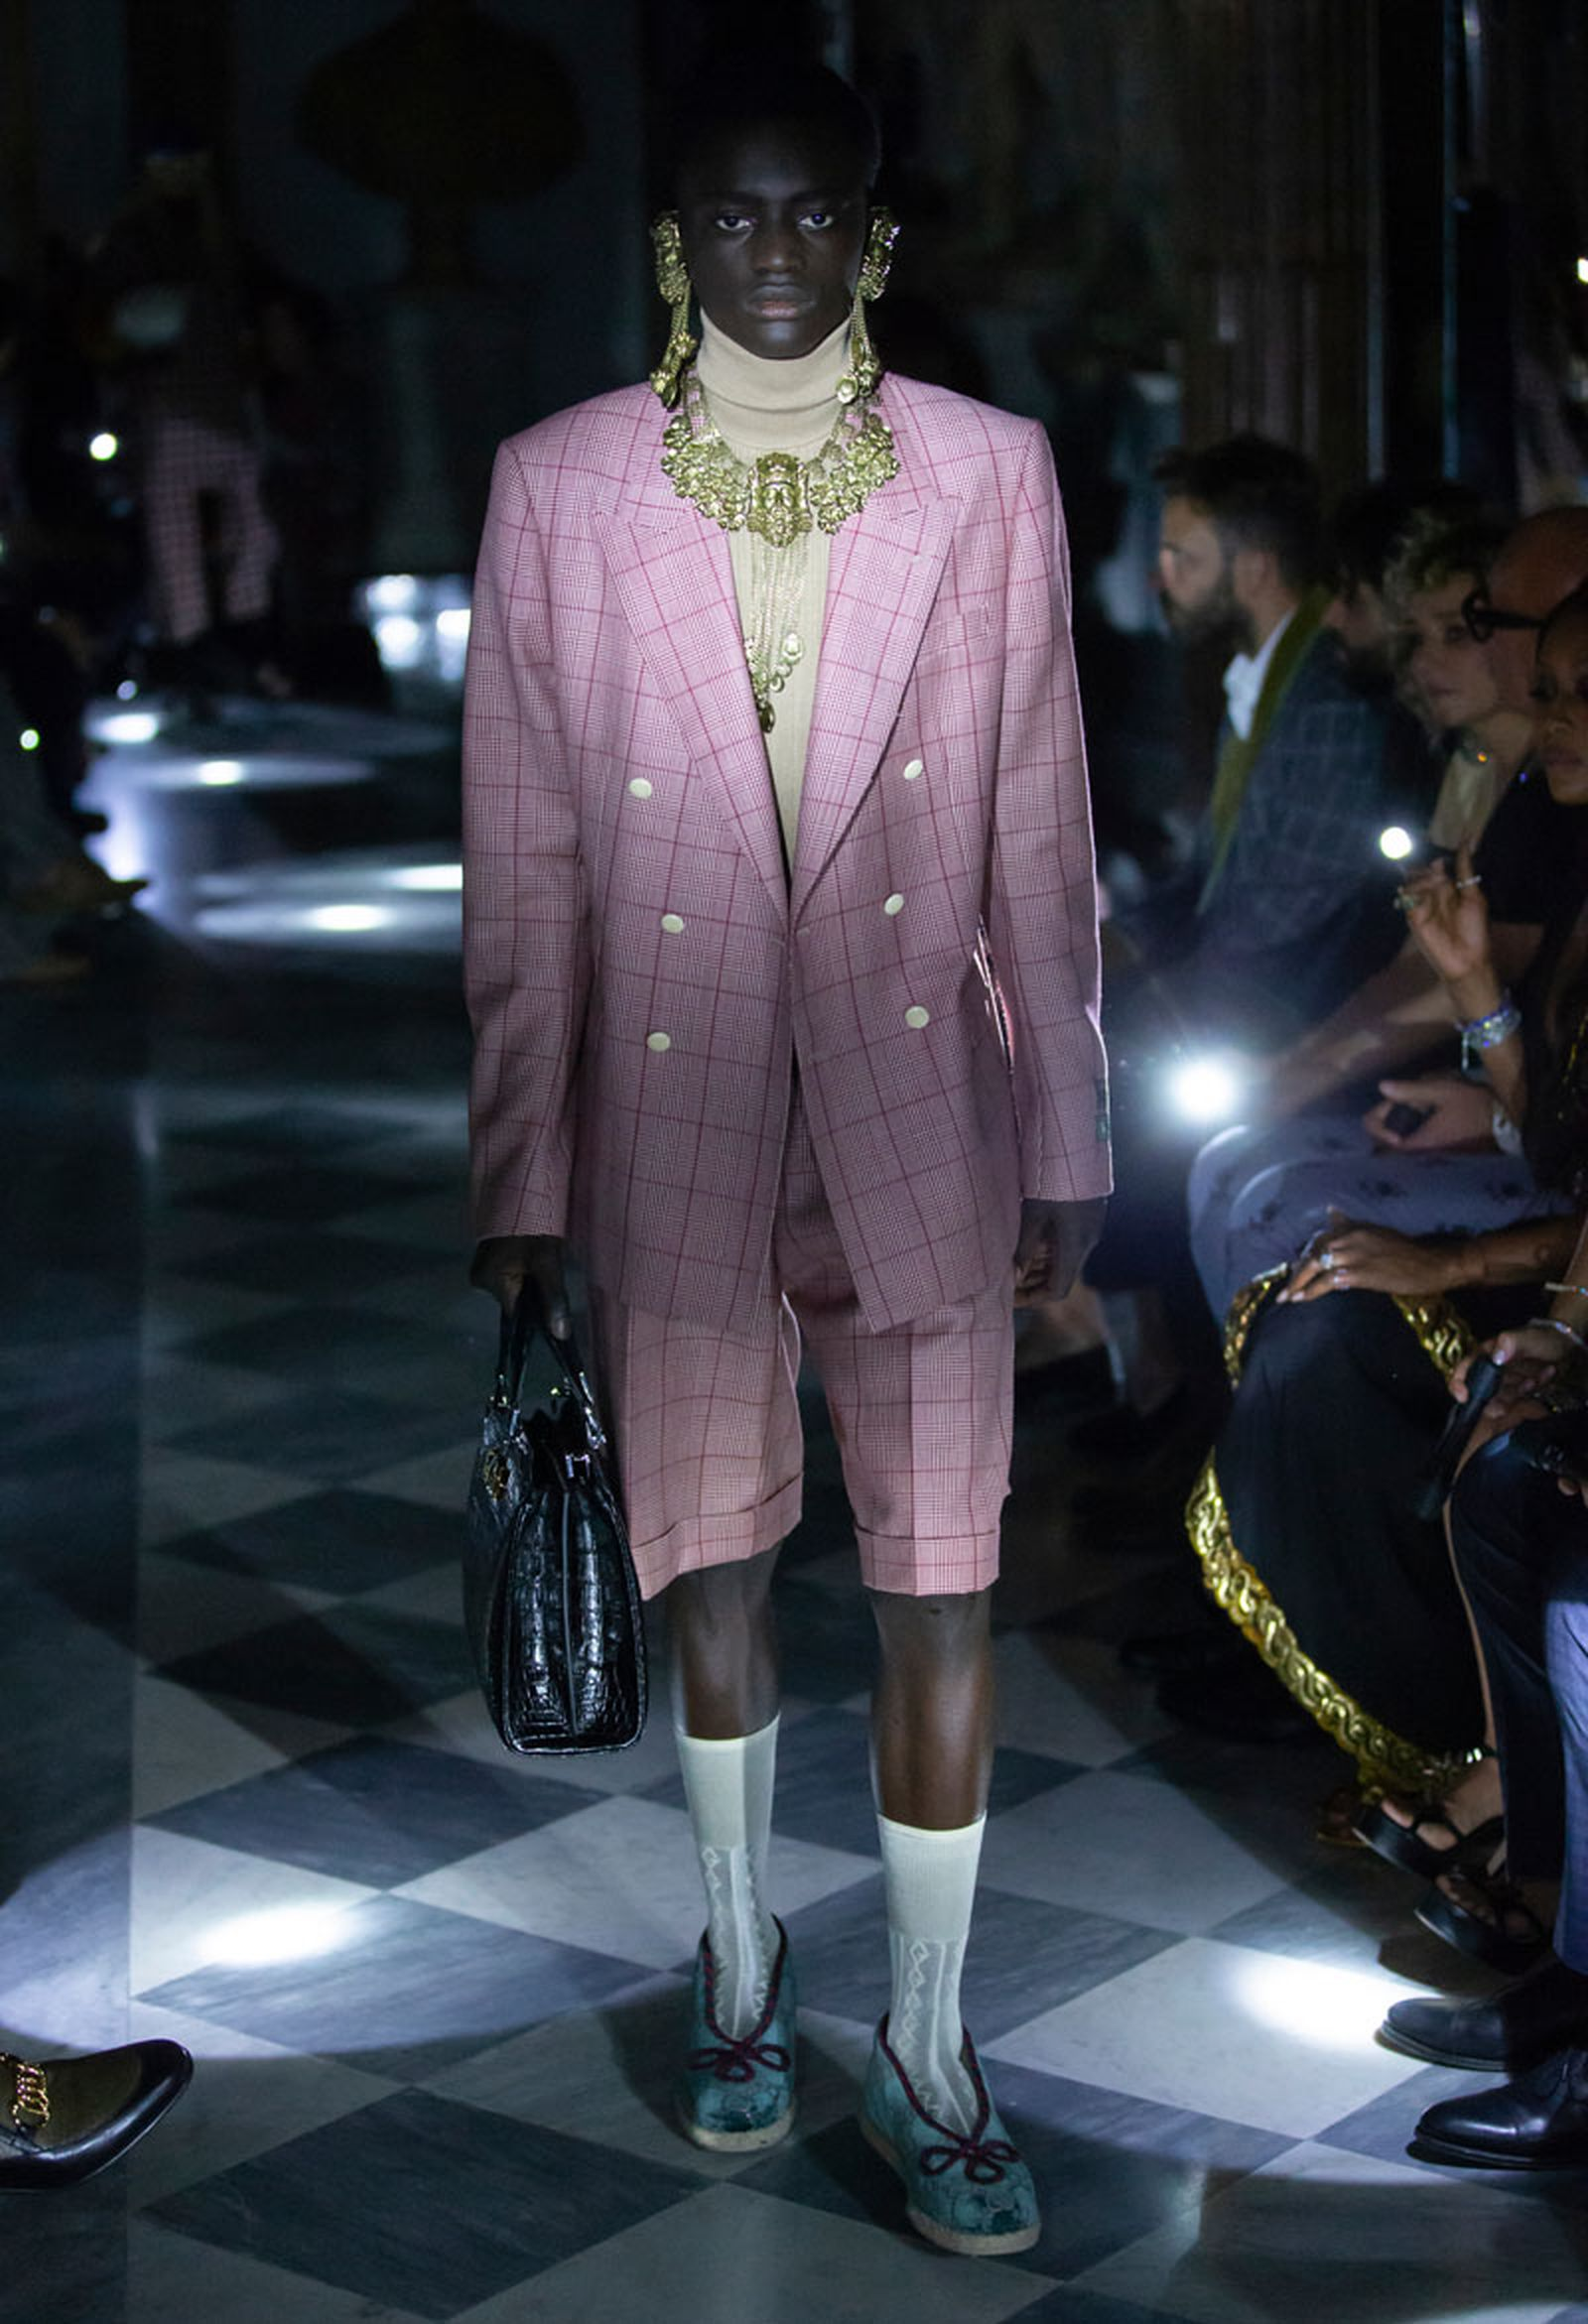 15gucci cruise 2020 runway Alessandro Michele asap rocky harry styles